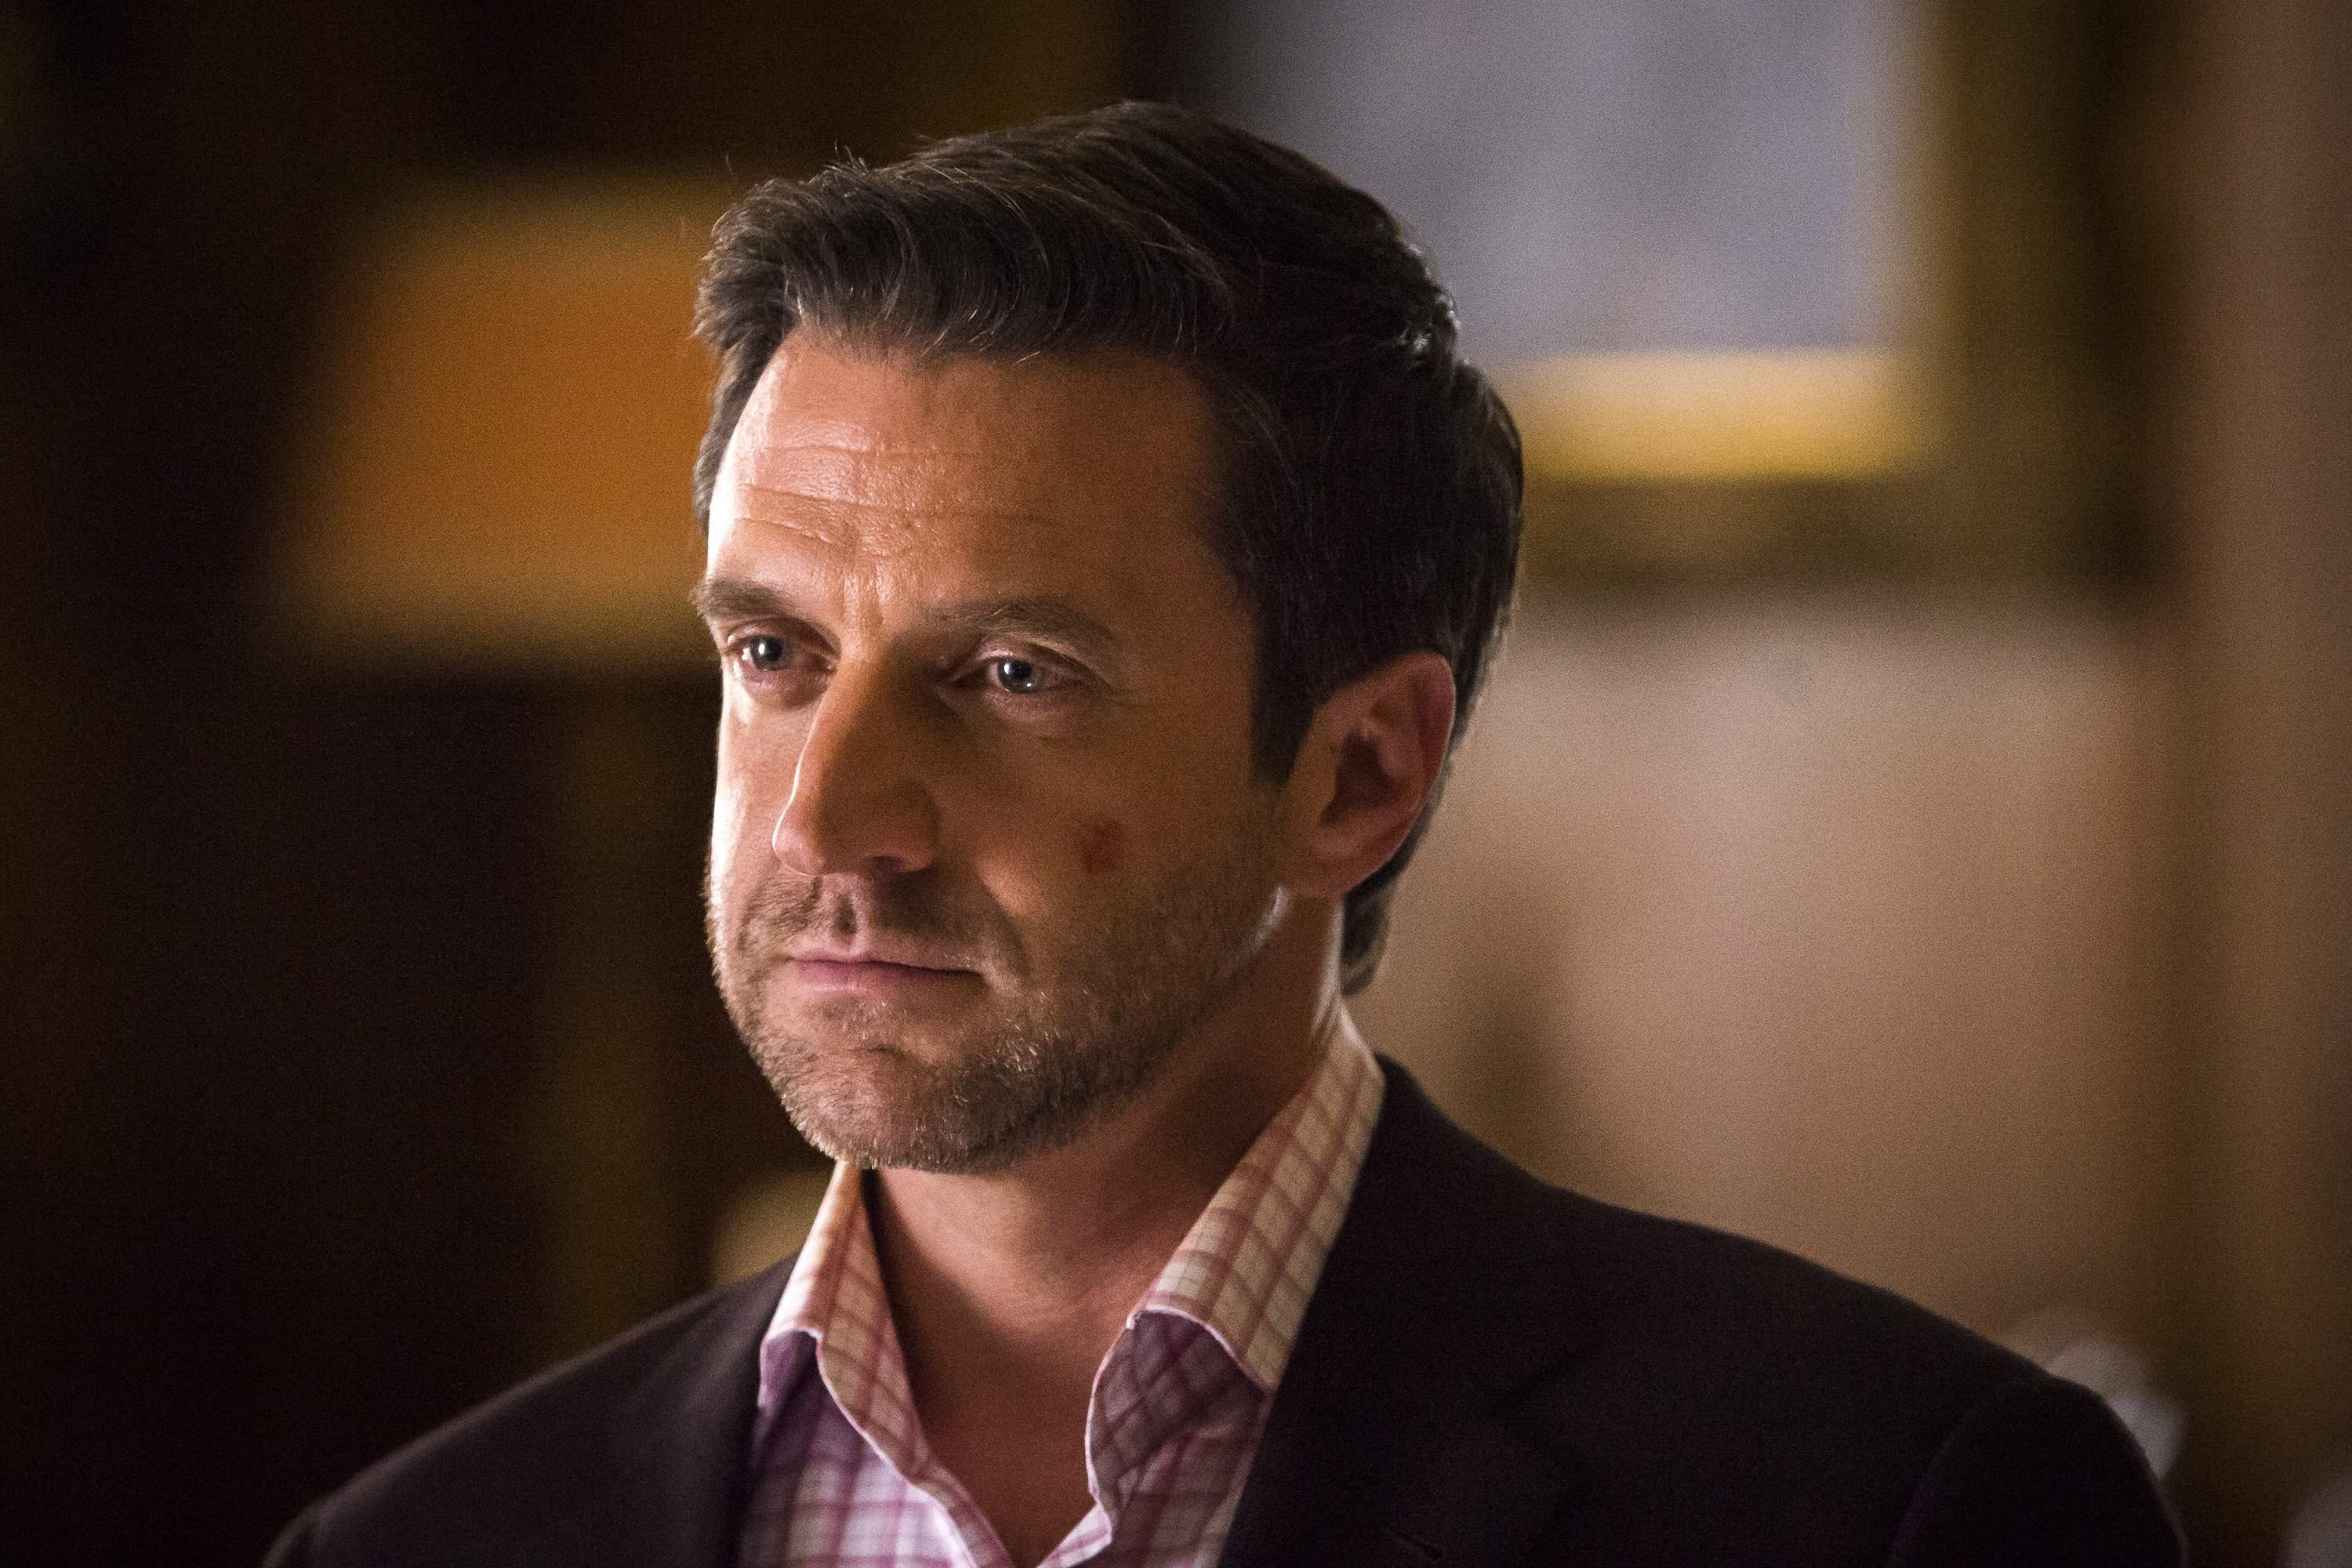 Frederick Chilton approaches Hannibal's other victims in episode 4 to recruit them to go after Hannibal